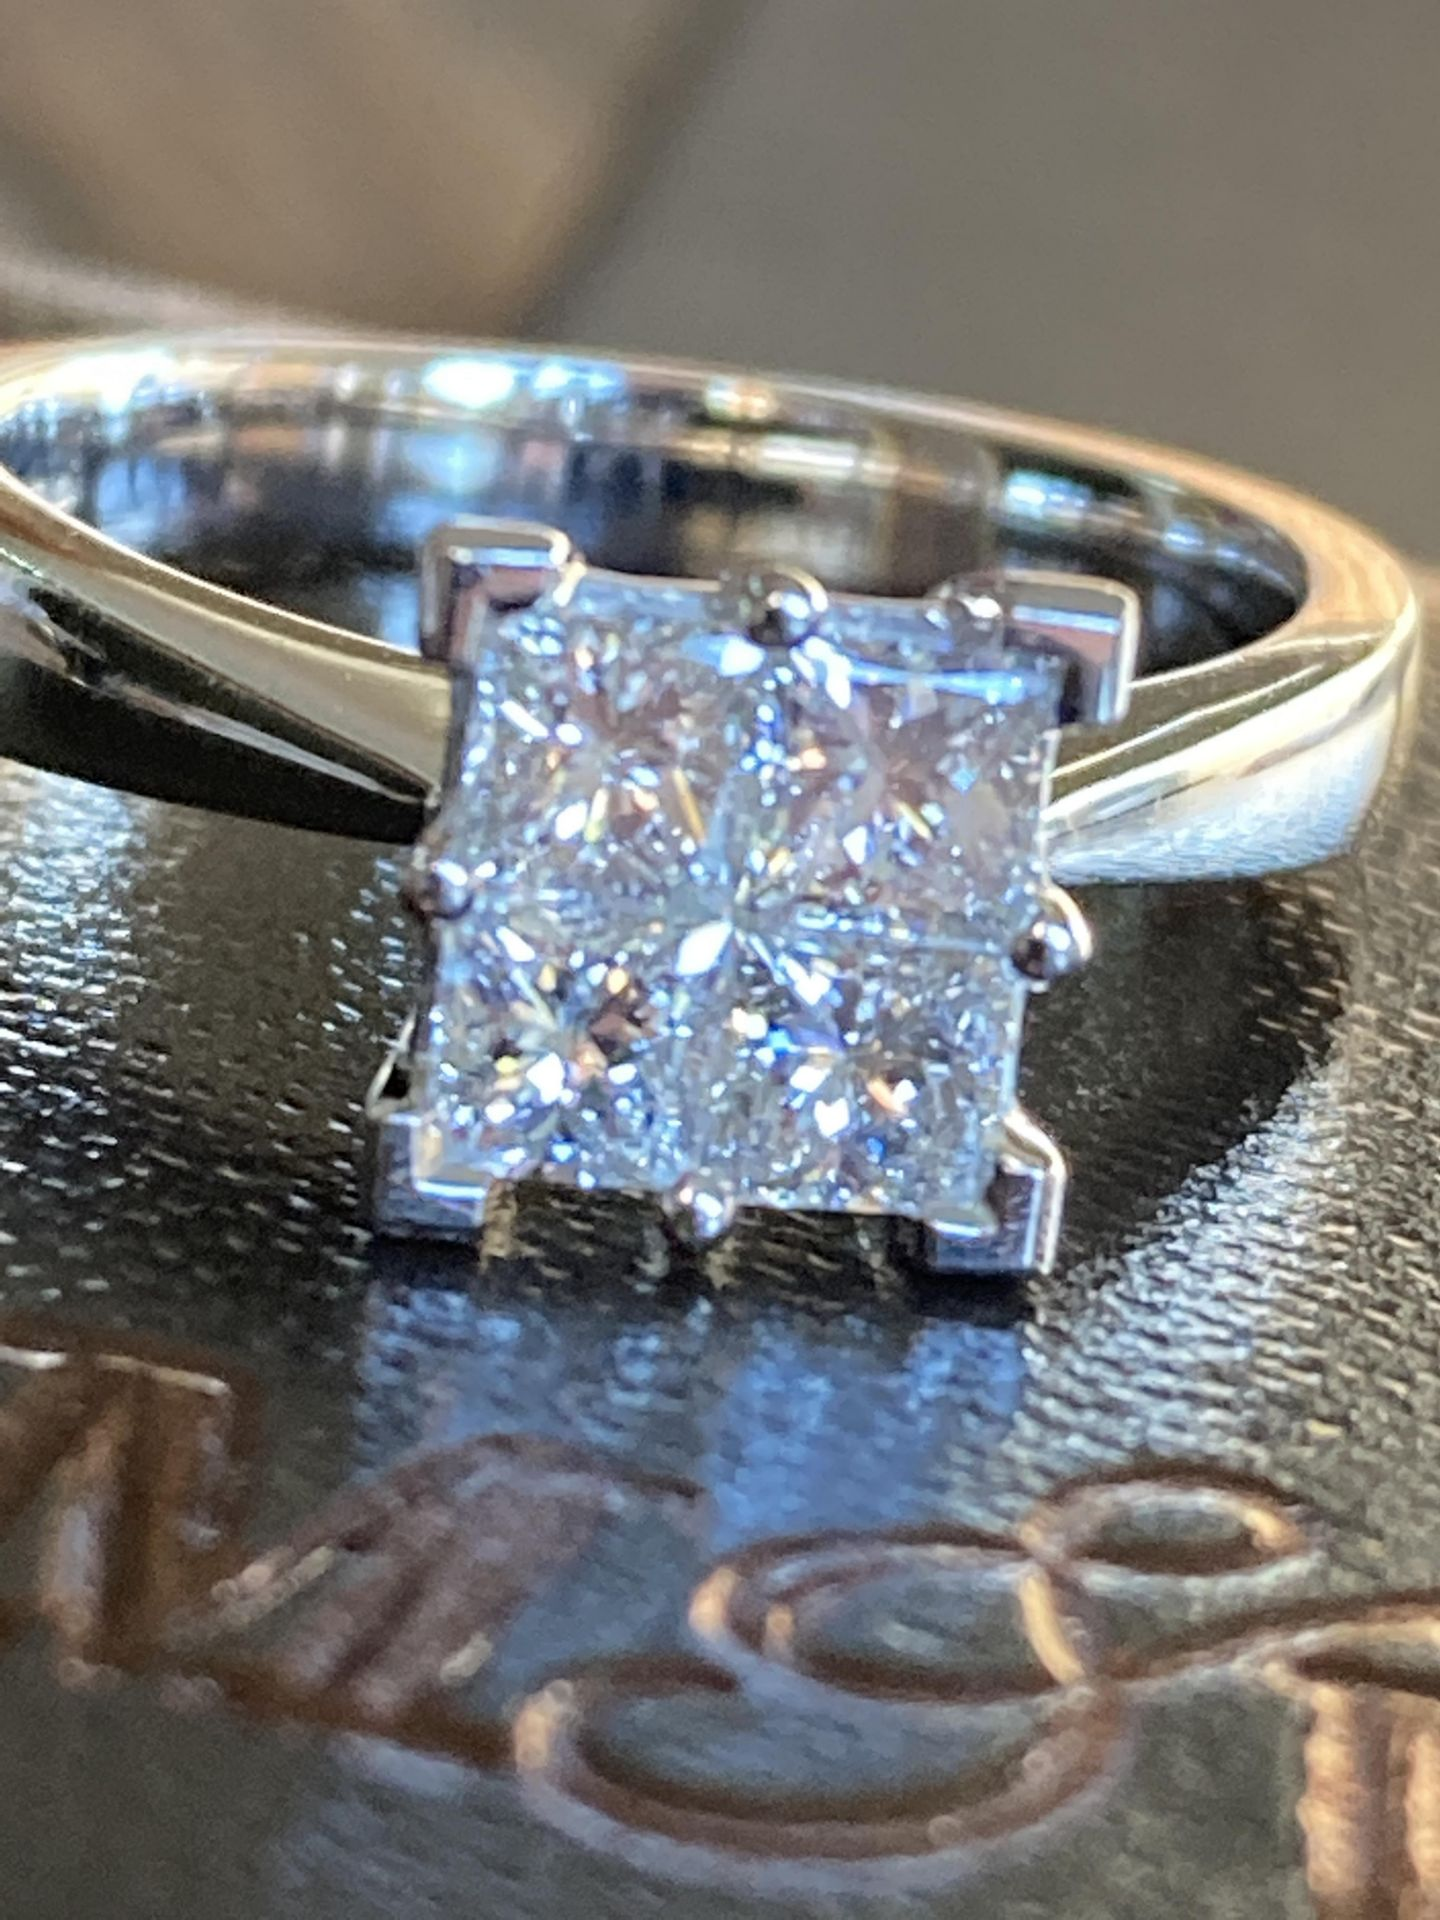 0.8-1CT APPROX. PRINCESS CUT DIAMOND RING IN 18CT WHITE GOLD - SIZE: M / WEIGHT: 5.2G